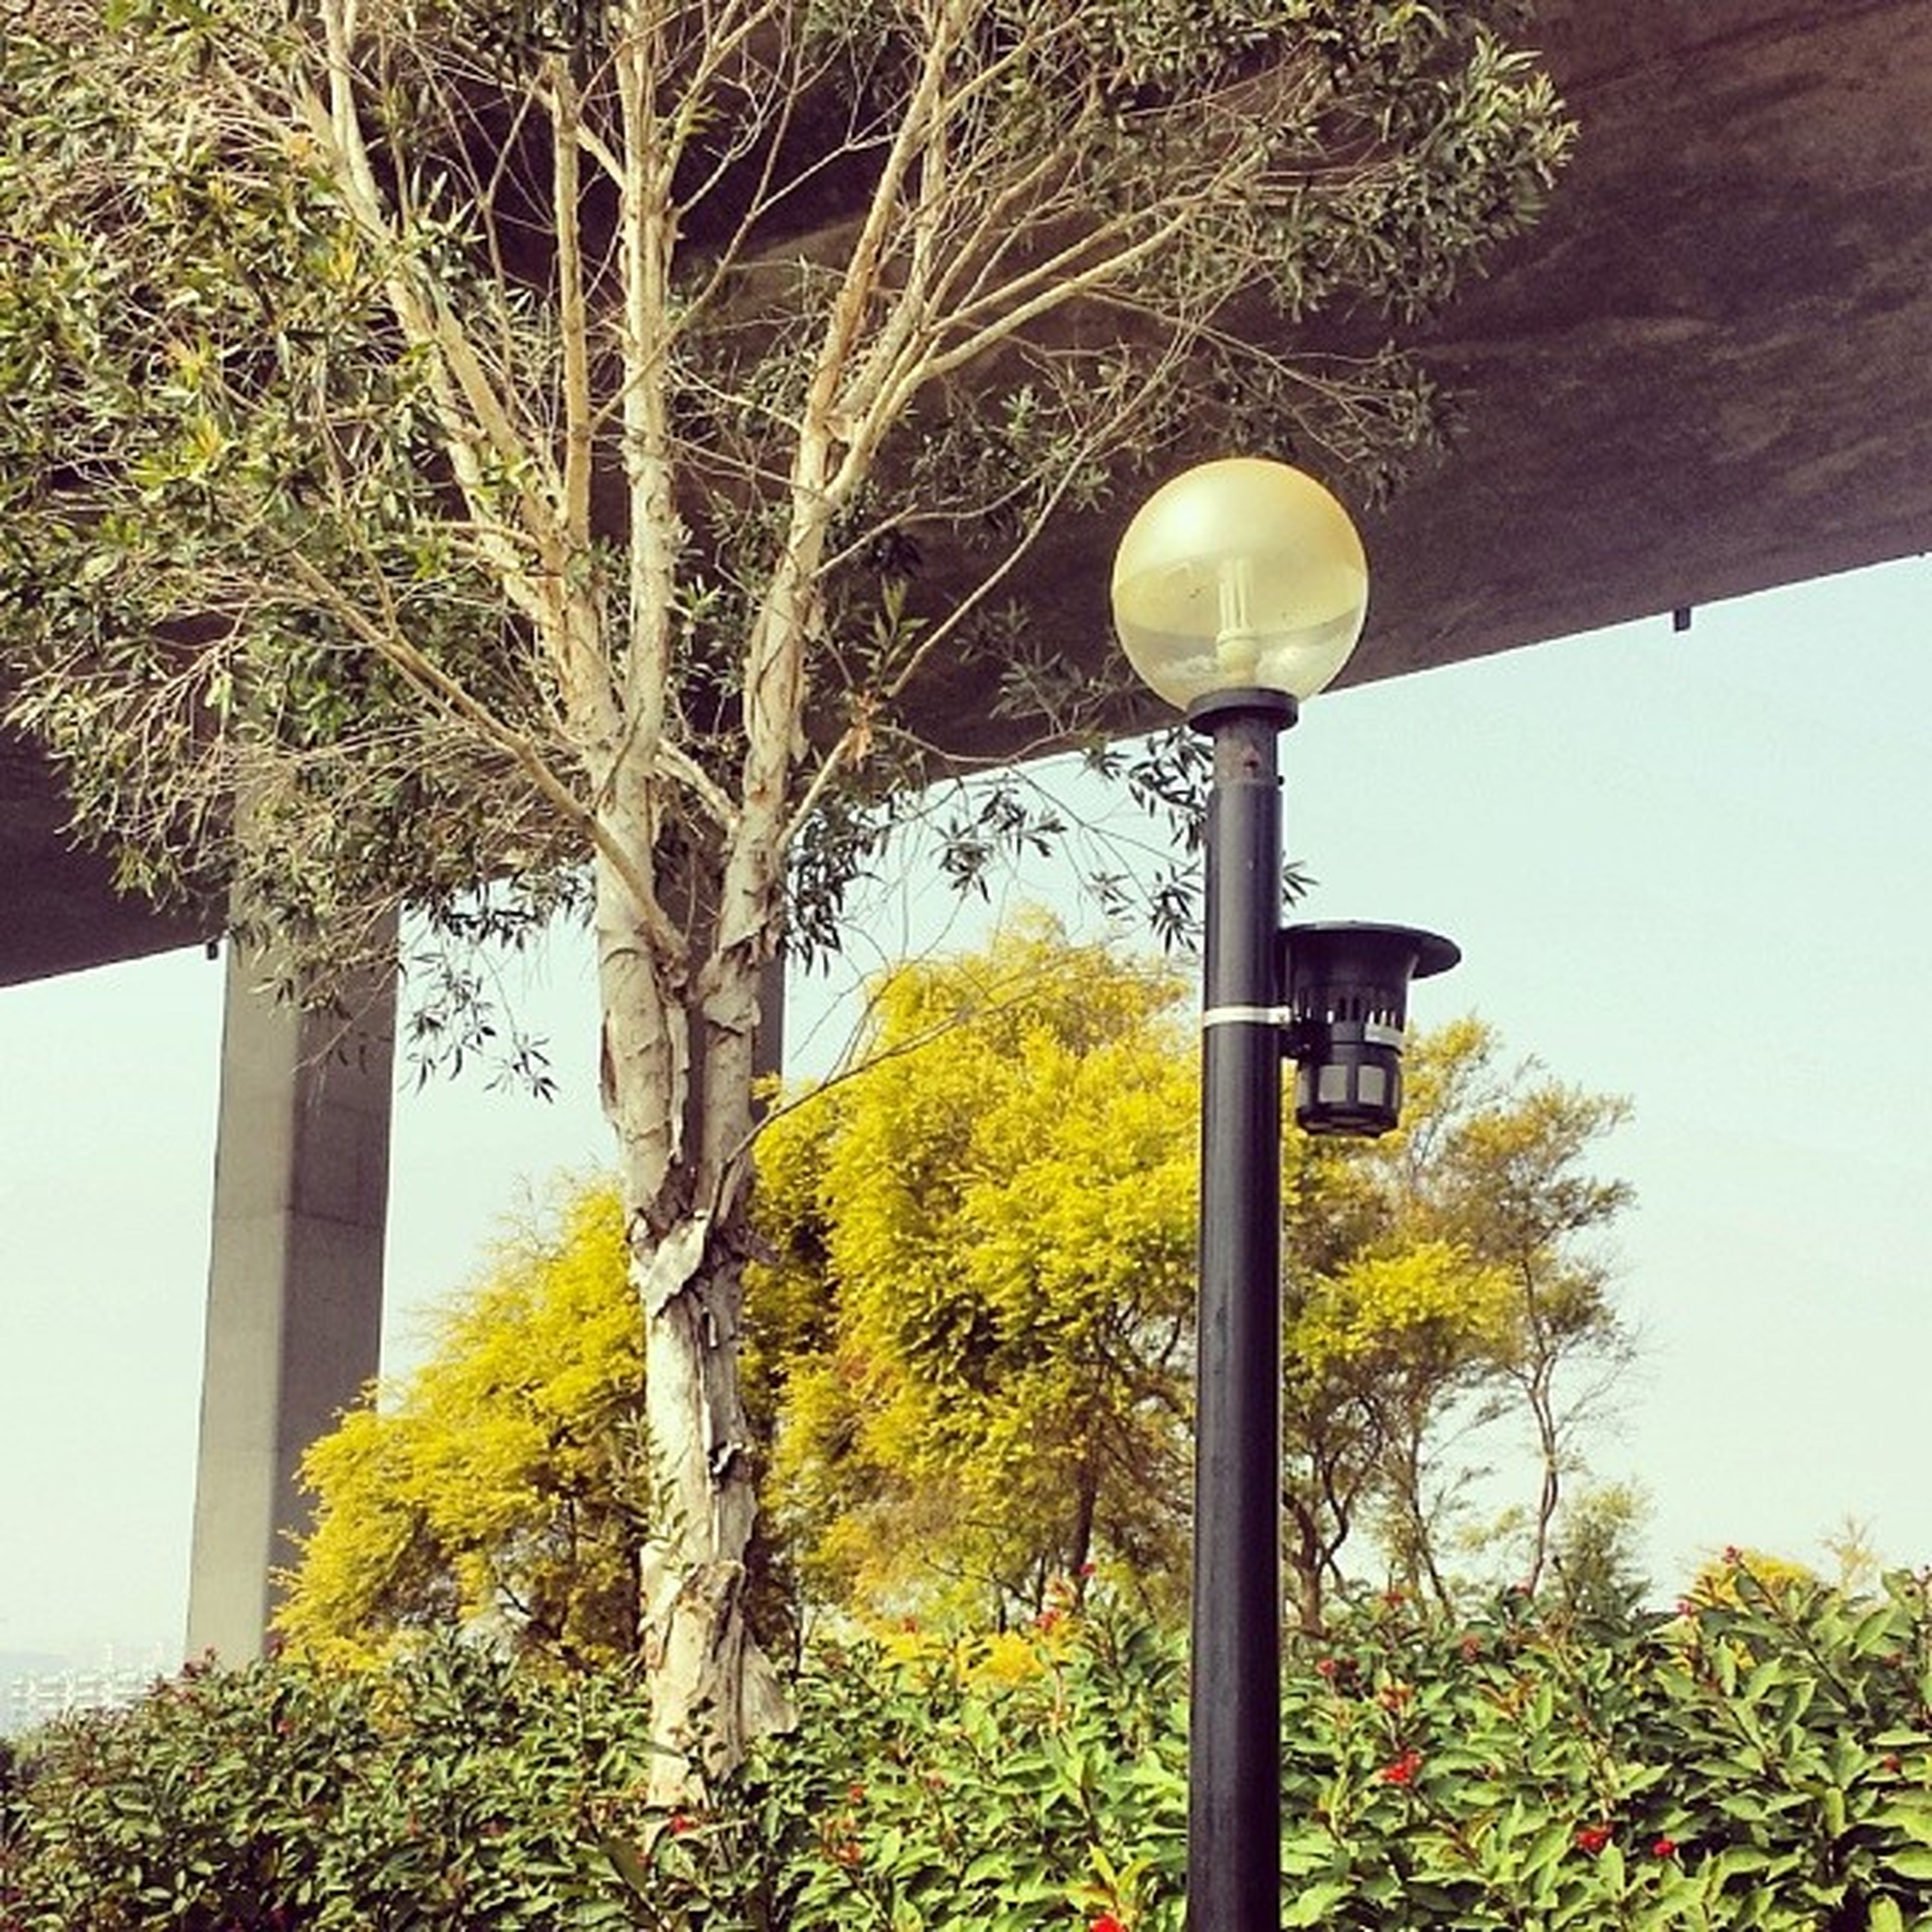 tree, low angle view, street light, lighting equipment, growth, built structure, architecture, branch, clear sky, plant, day, building exterior, green color, outdoors, nature, sky, no people, sunlight, lamp post, electric light